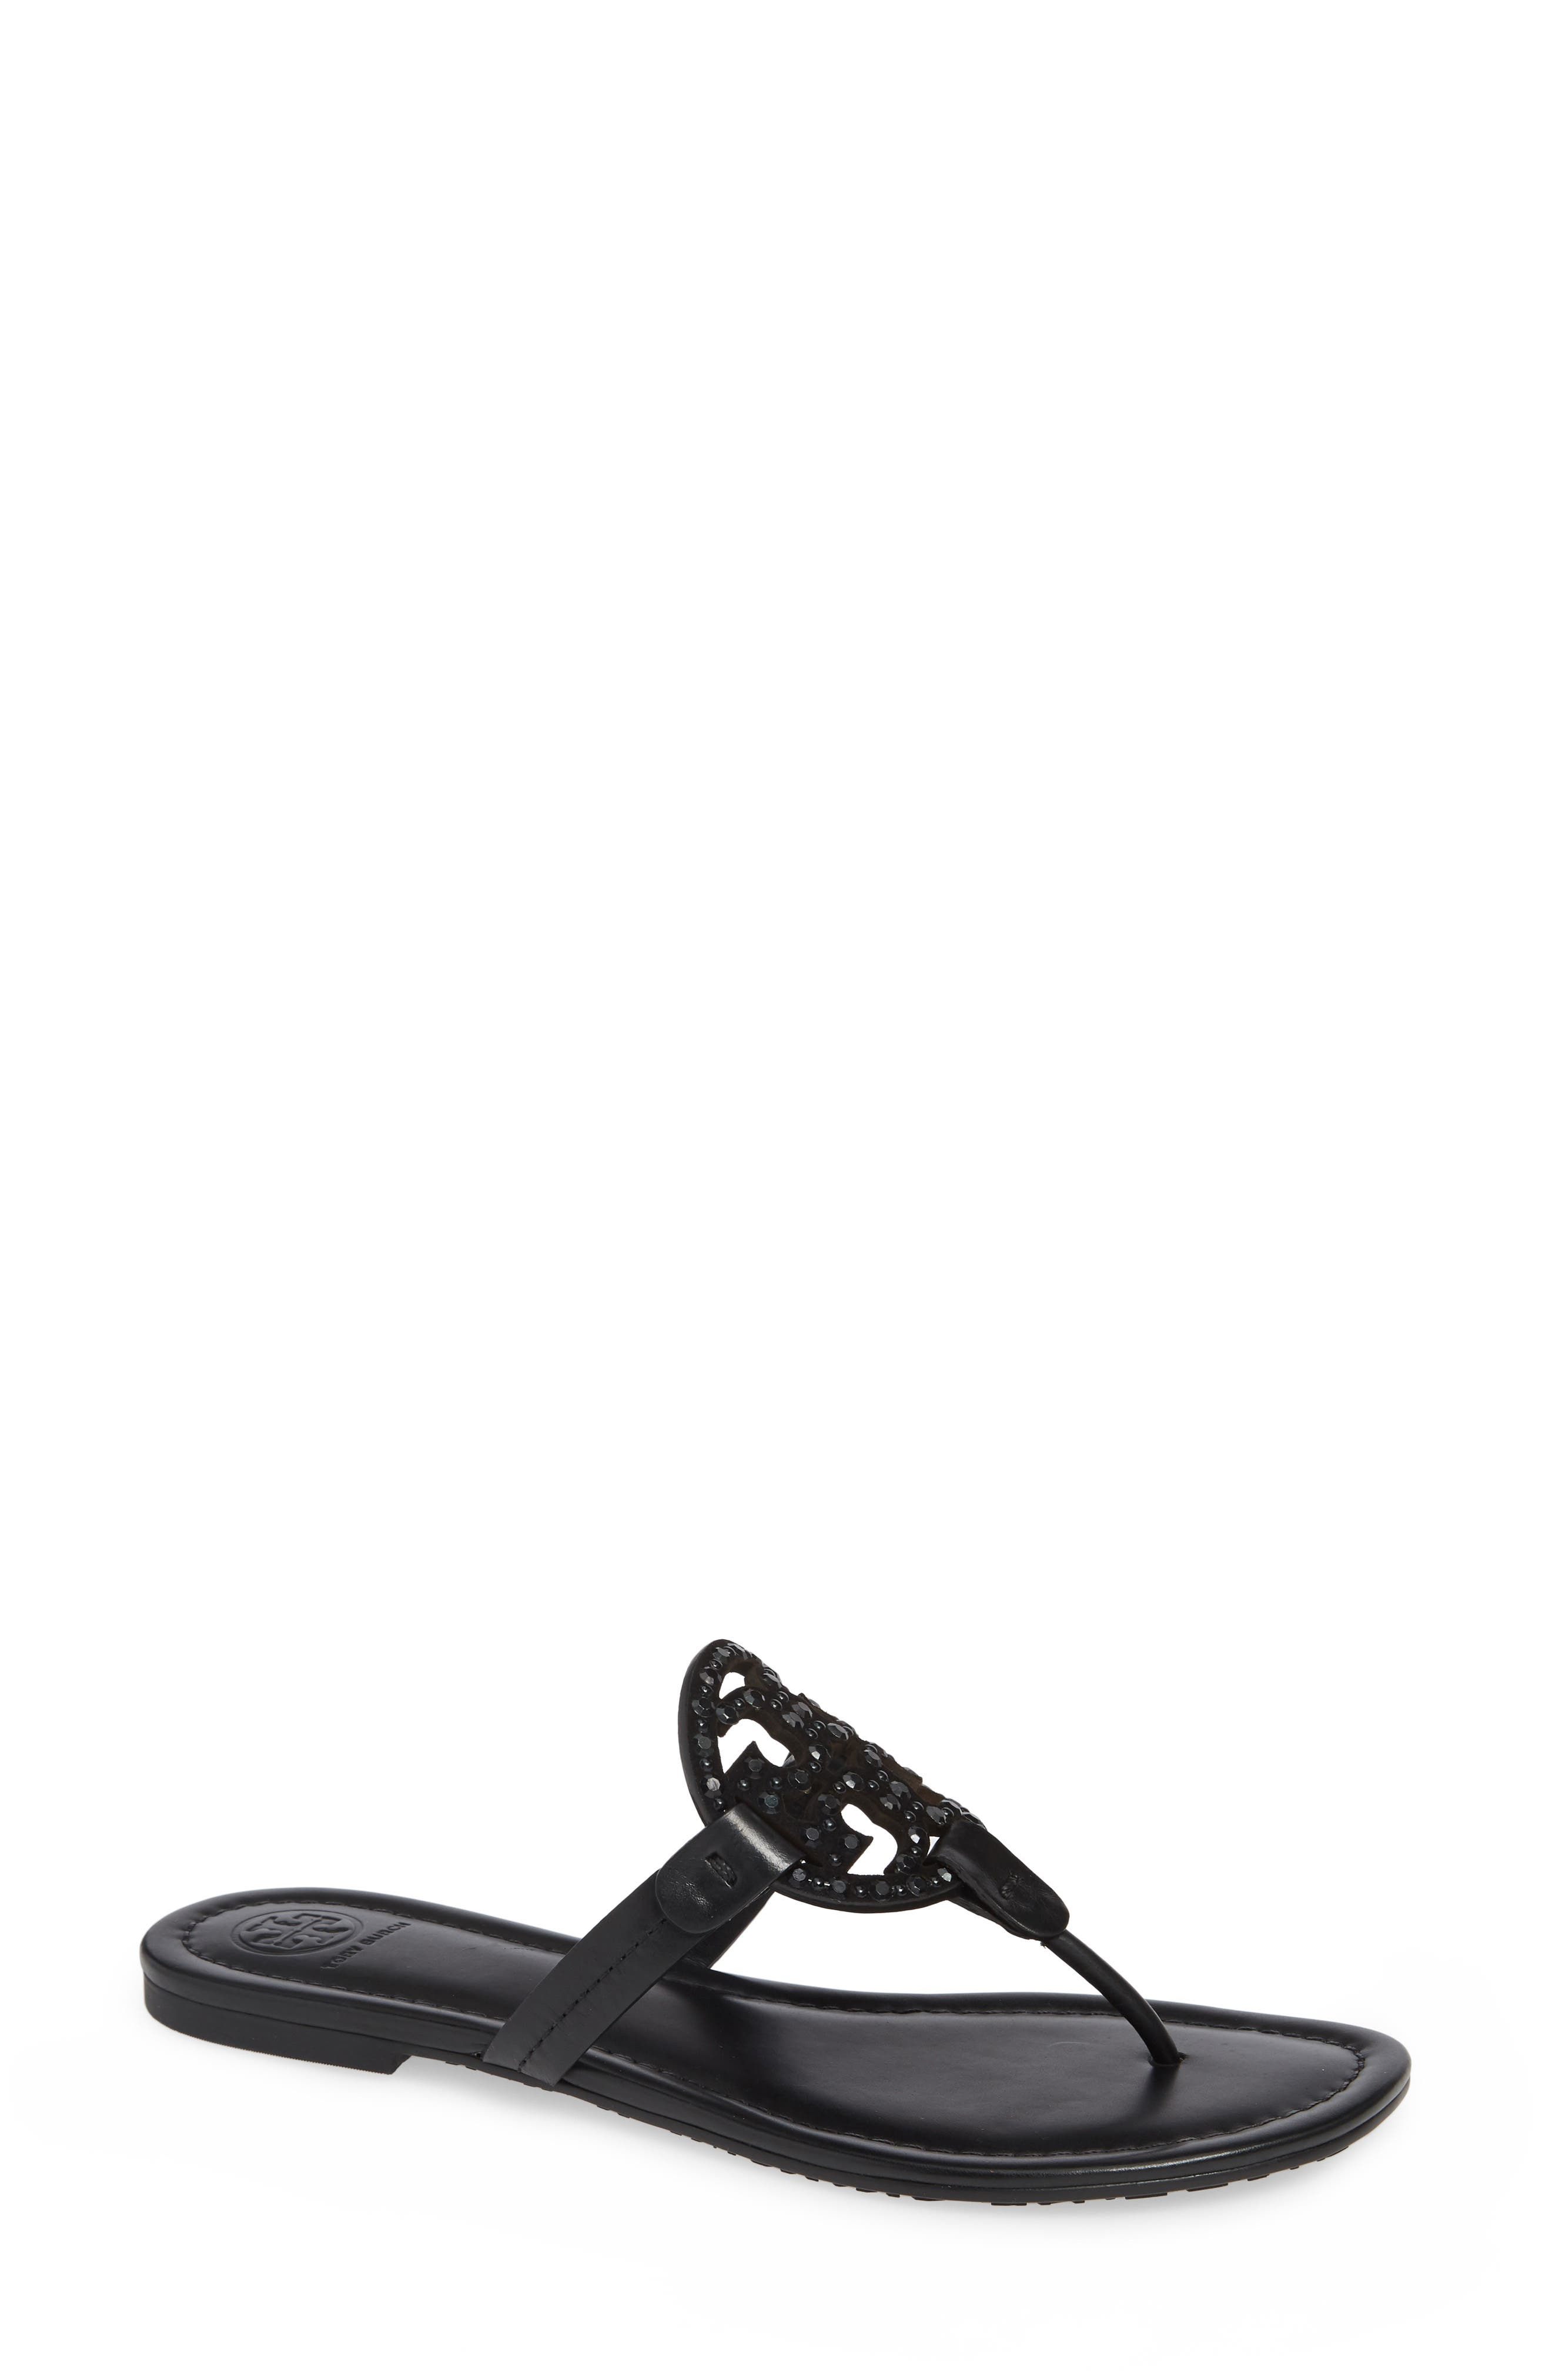 Miller Embellished Sandal,                         Main,                         color, PERFECT BLACK